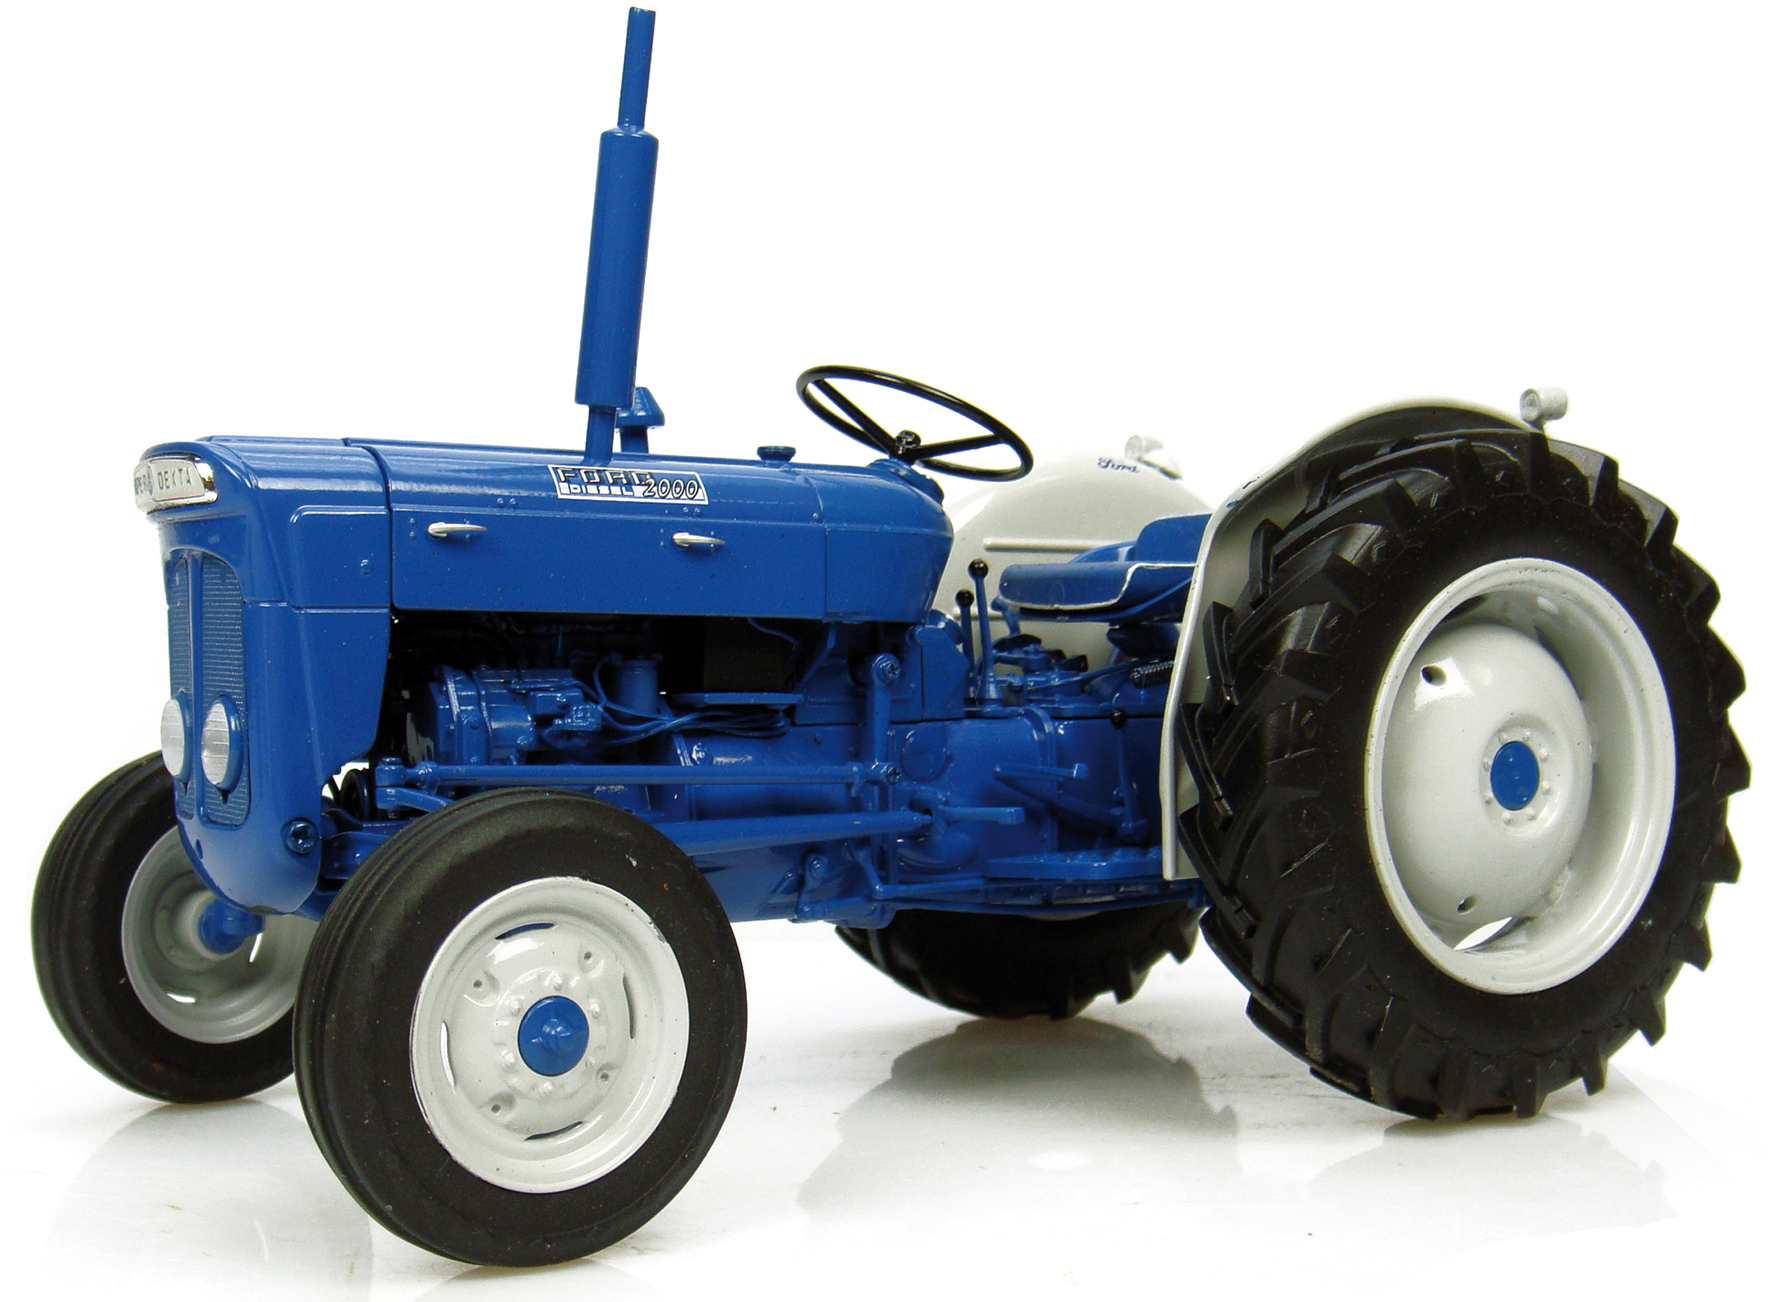 Fordson Super Dexta Diesel 2000 Tractor (U.S. Version) 1/16 Diecast Model by Universal Hobbies